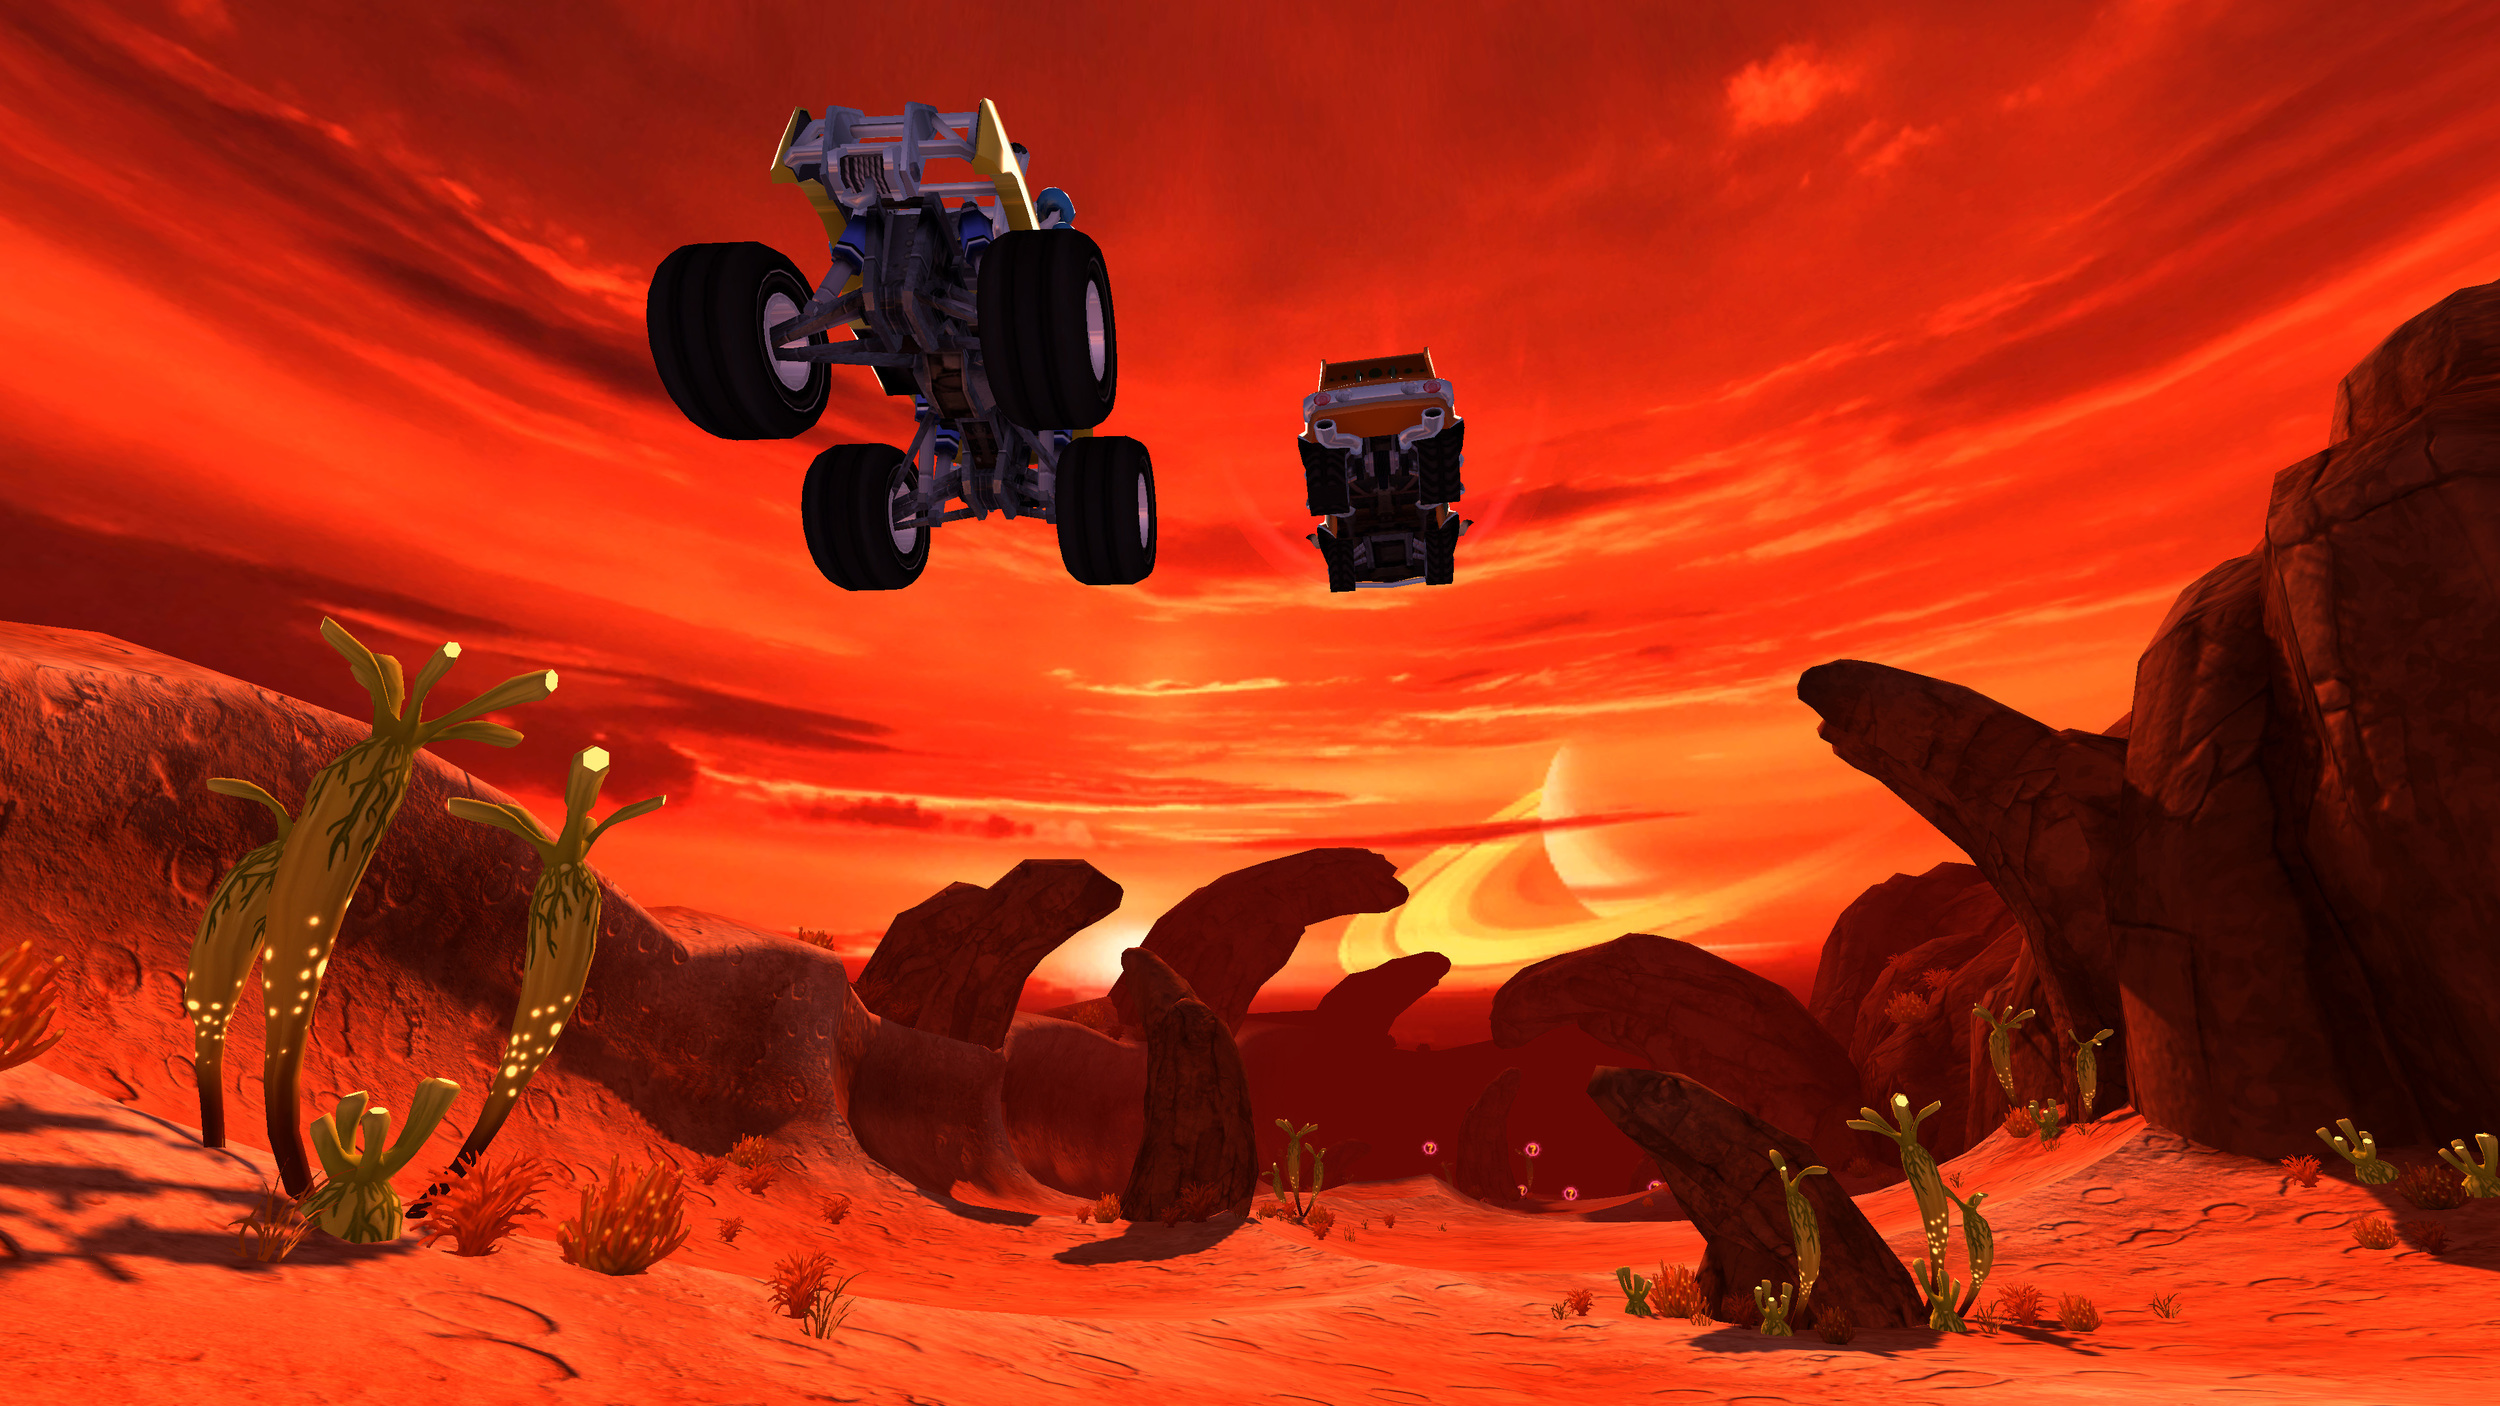 2014-08-28_BeachBuggyRacing_VectorUnit_4kWallpaper_RedPlanet_B.jpg